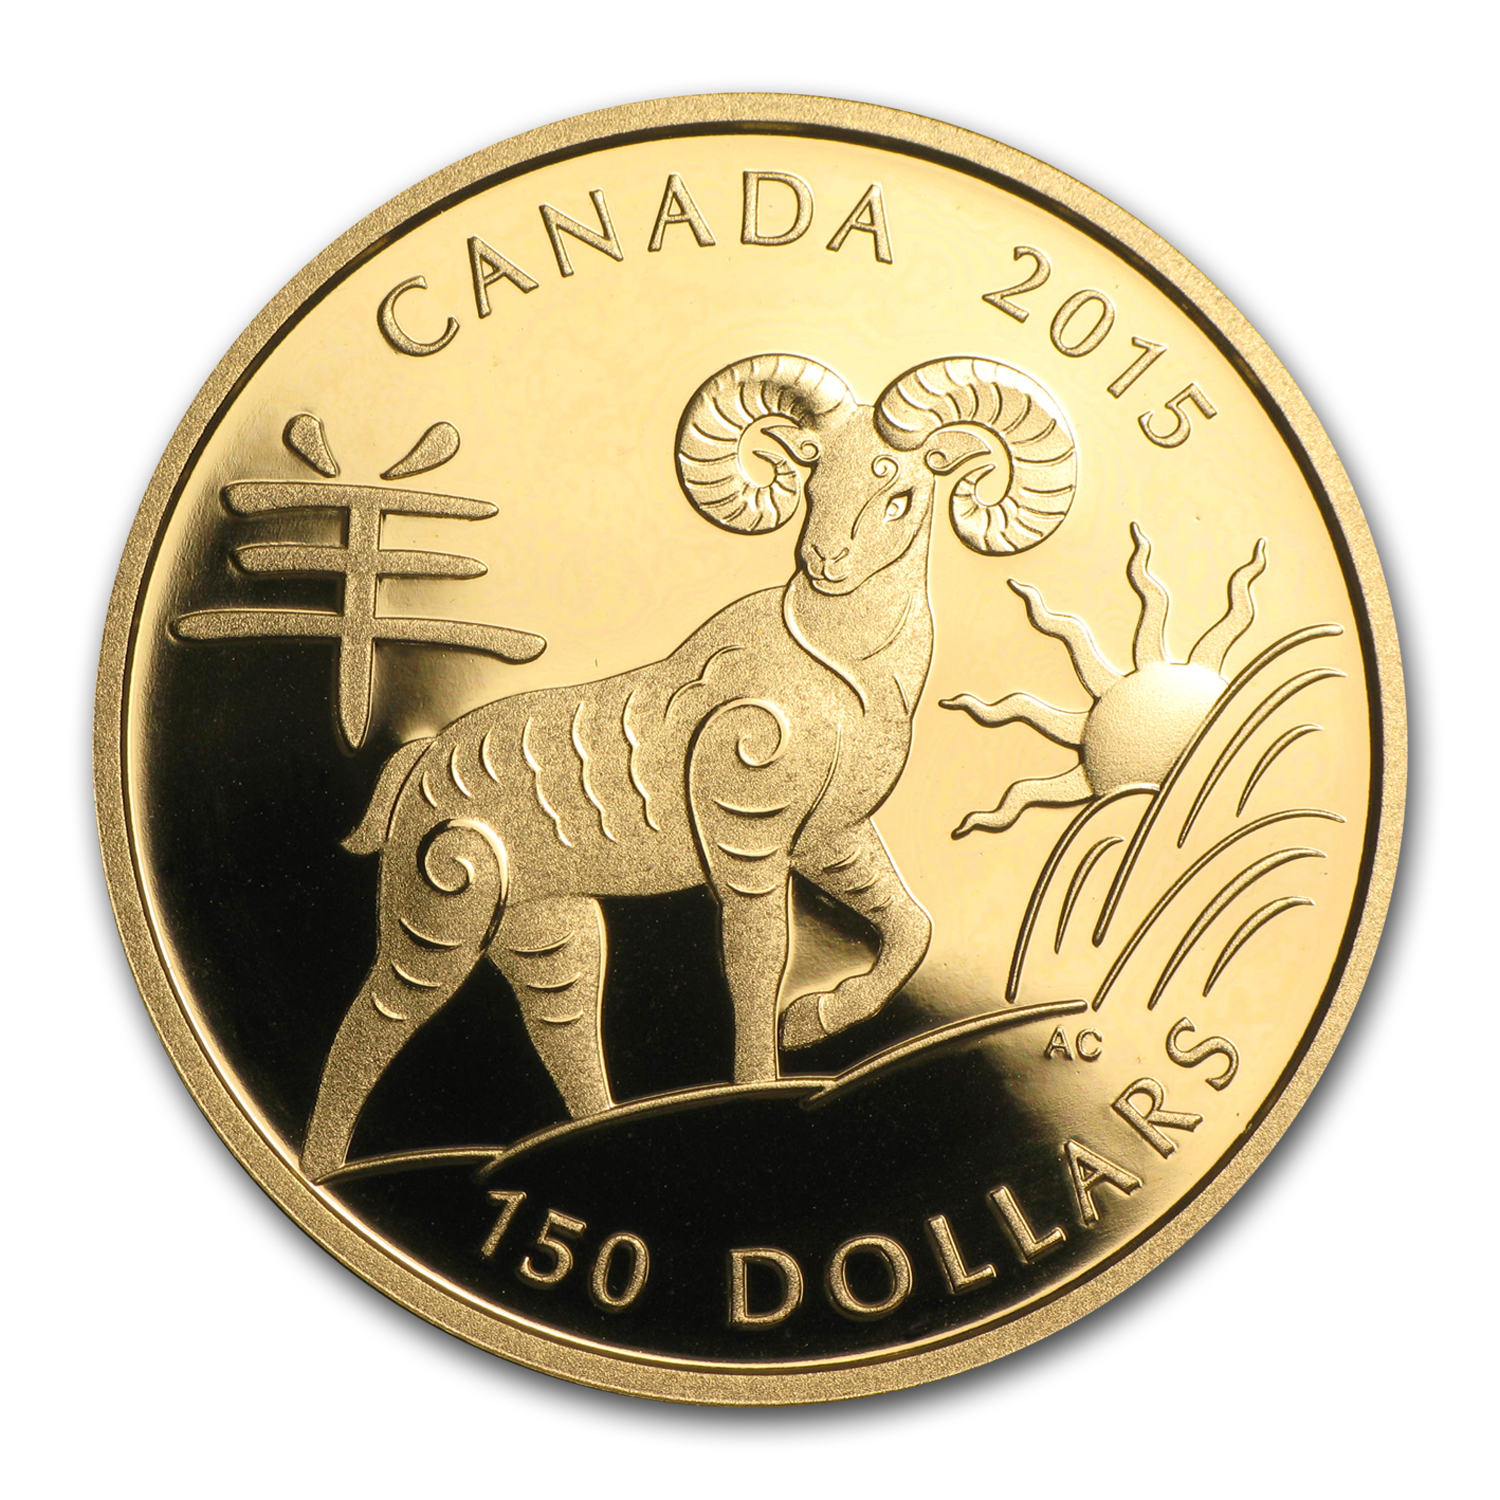 2015 Canada Gold $150 Sheep Proof (w/Box & COA)